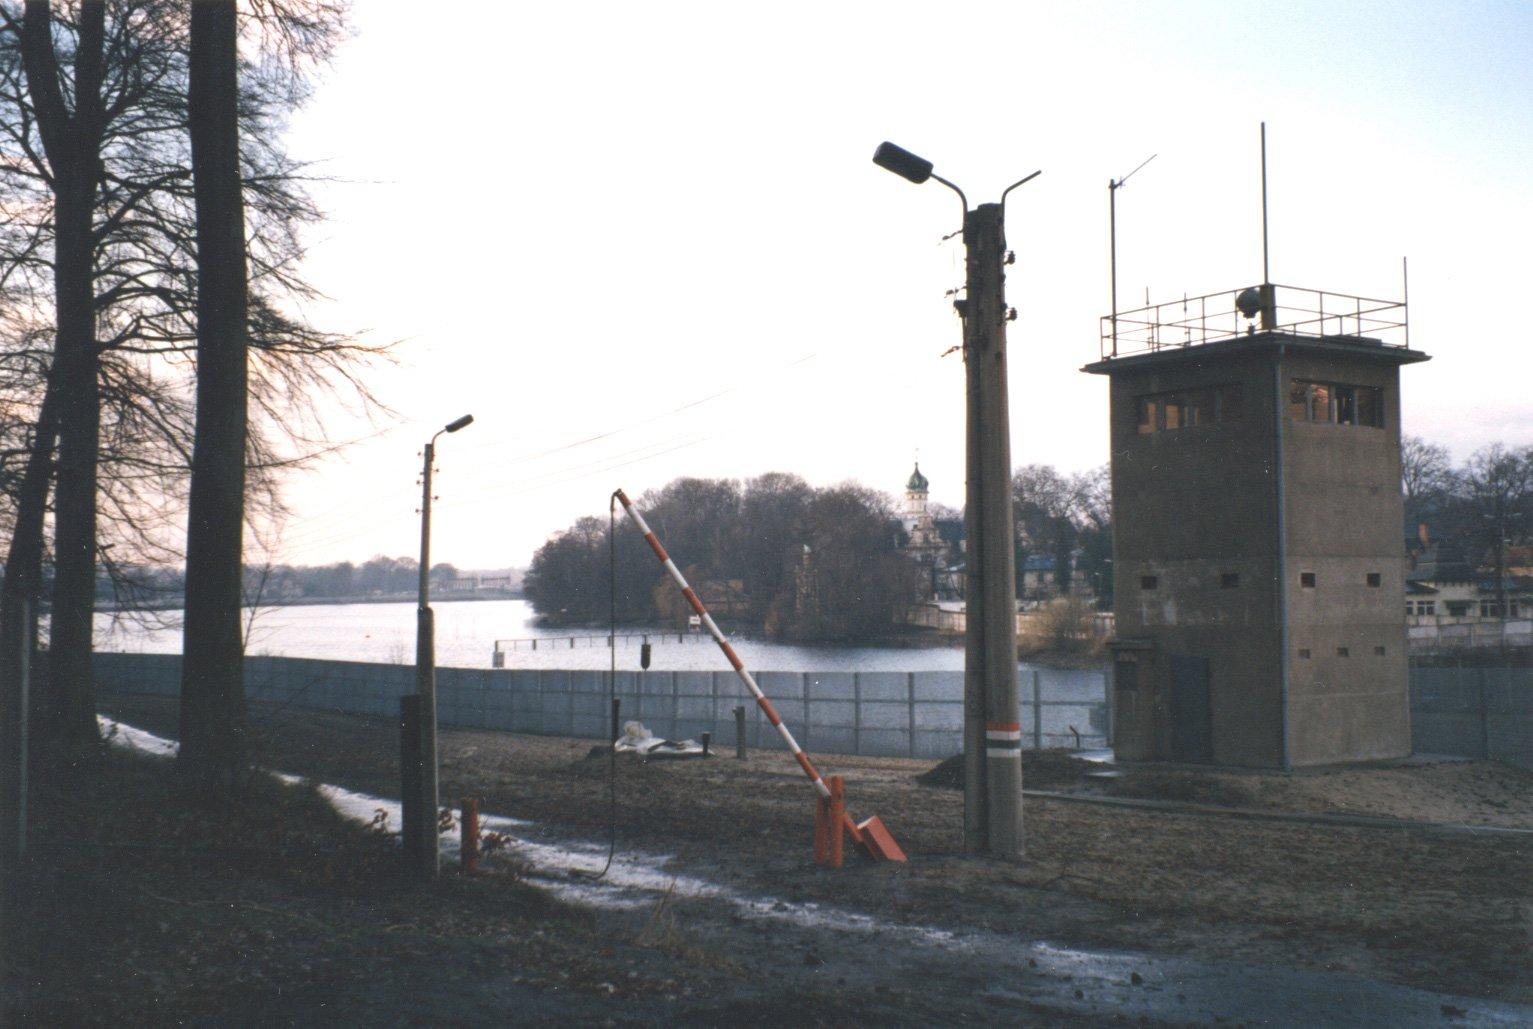 Abandoned command post of the border troops near the palace gardens in Babelsberg, Potsdam, January 1990